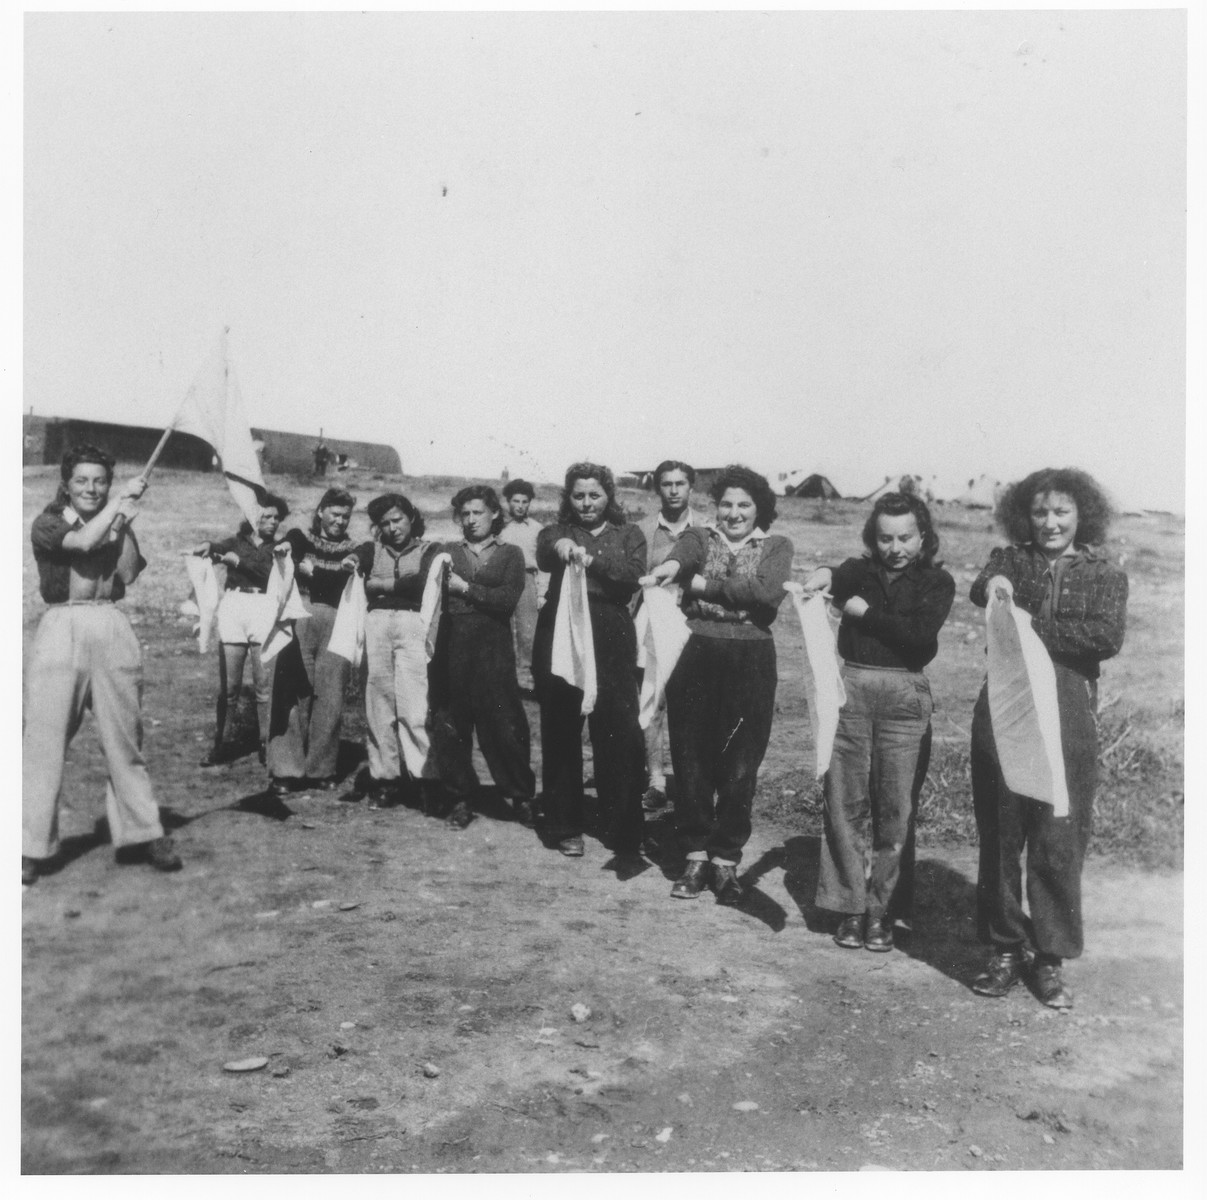 Young Jewish women who have been interned in a detention camp on Cyprus, are instructed in the use signal flags as part of their paramilitary training.  Among those pictured is Pnina Halpern (at the far right).